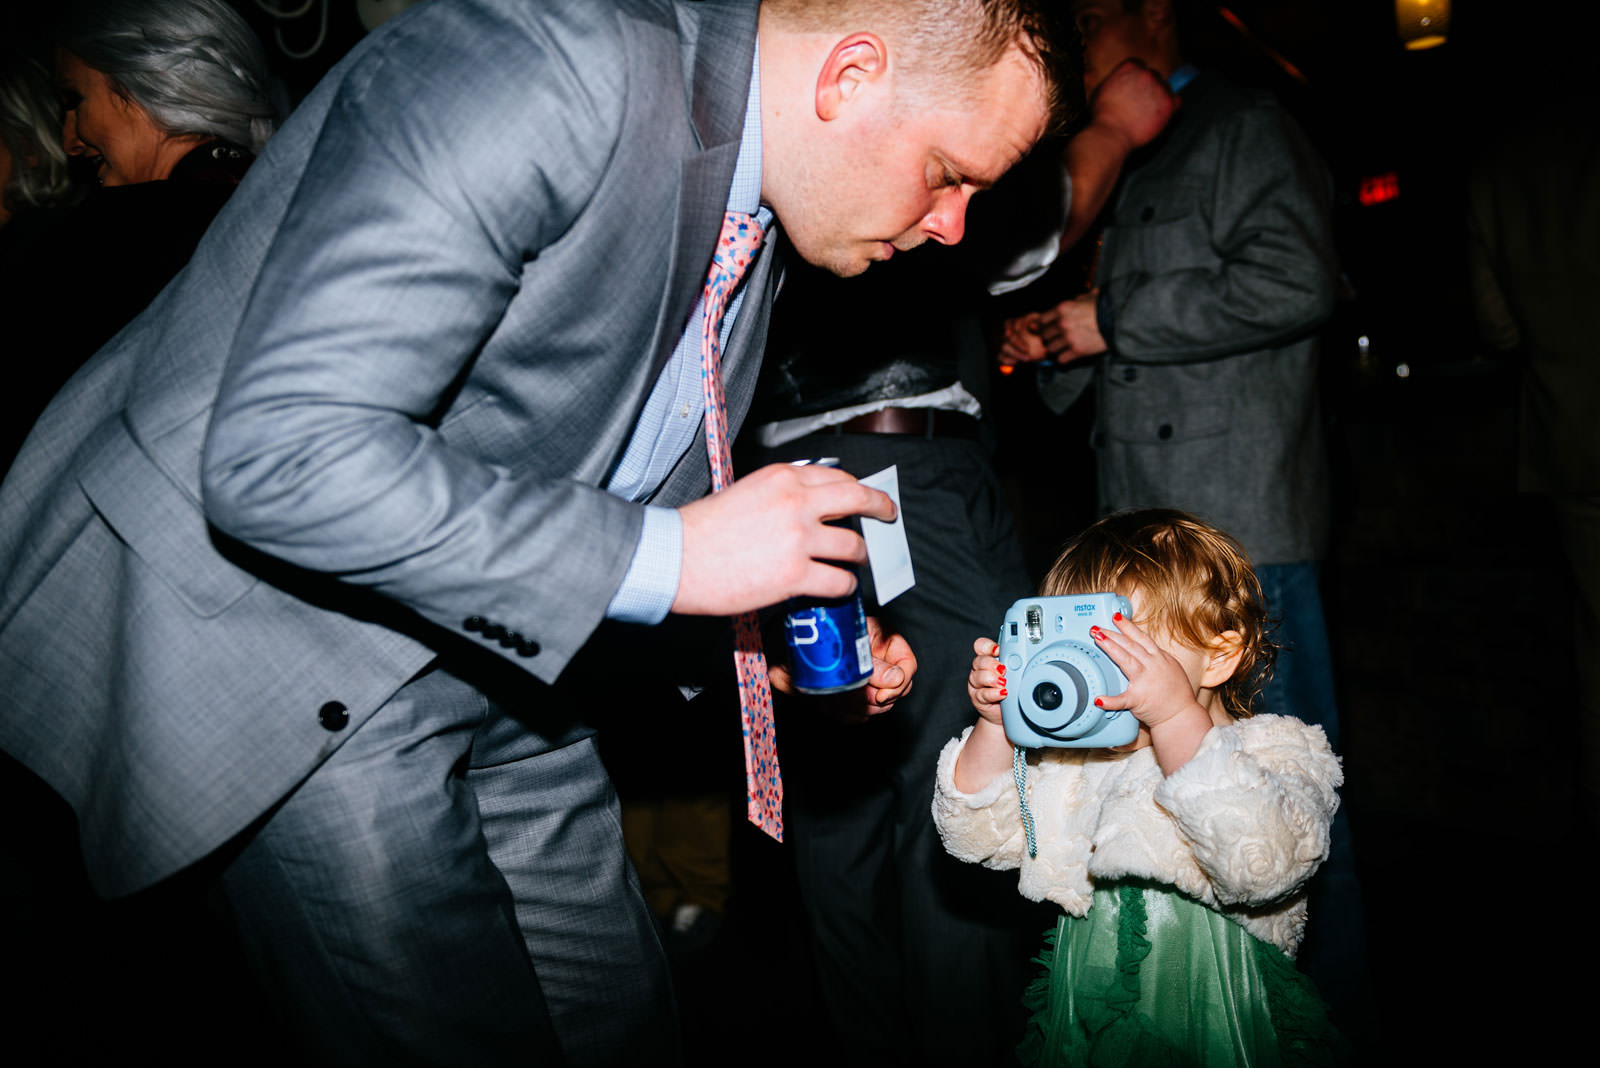 kid using instax camera at wedding reception